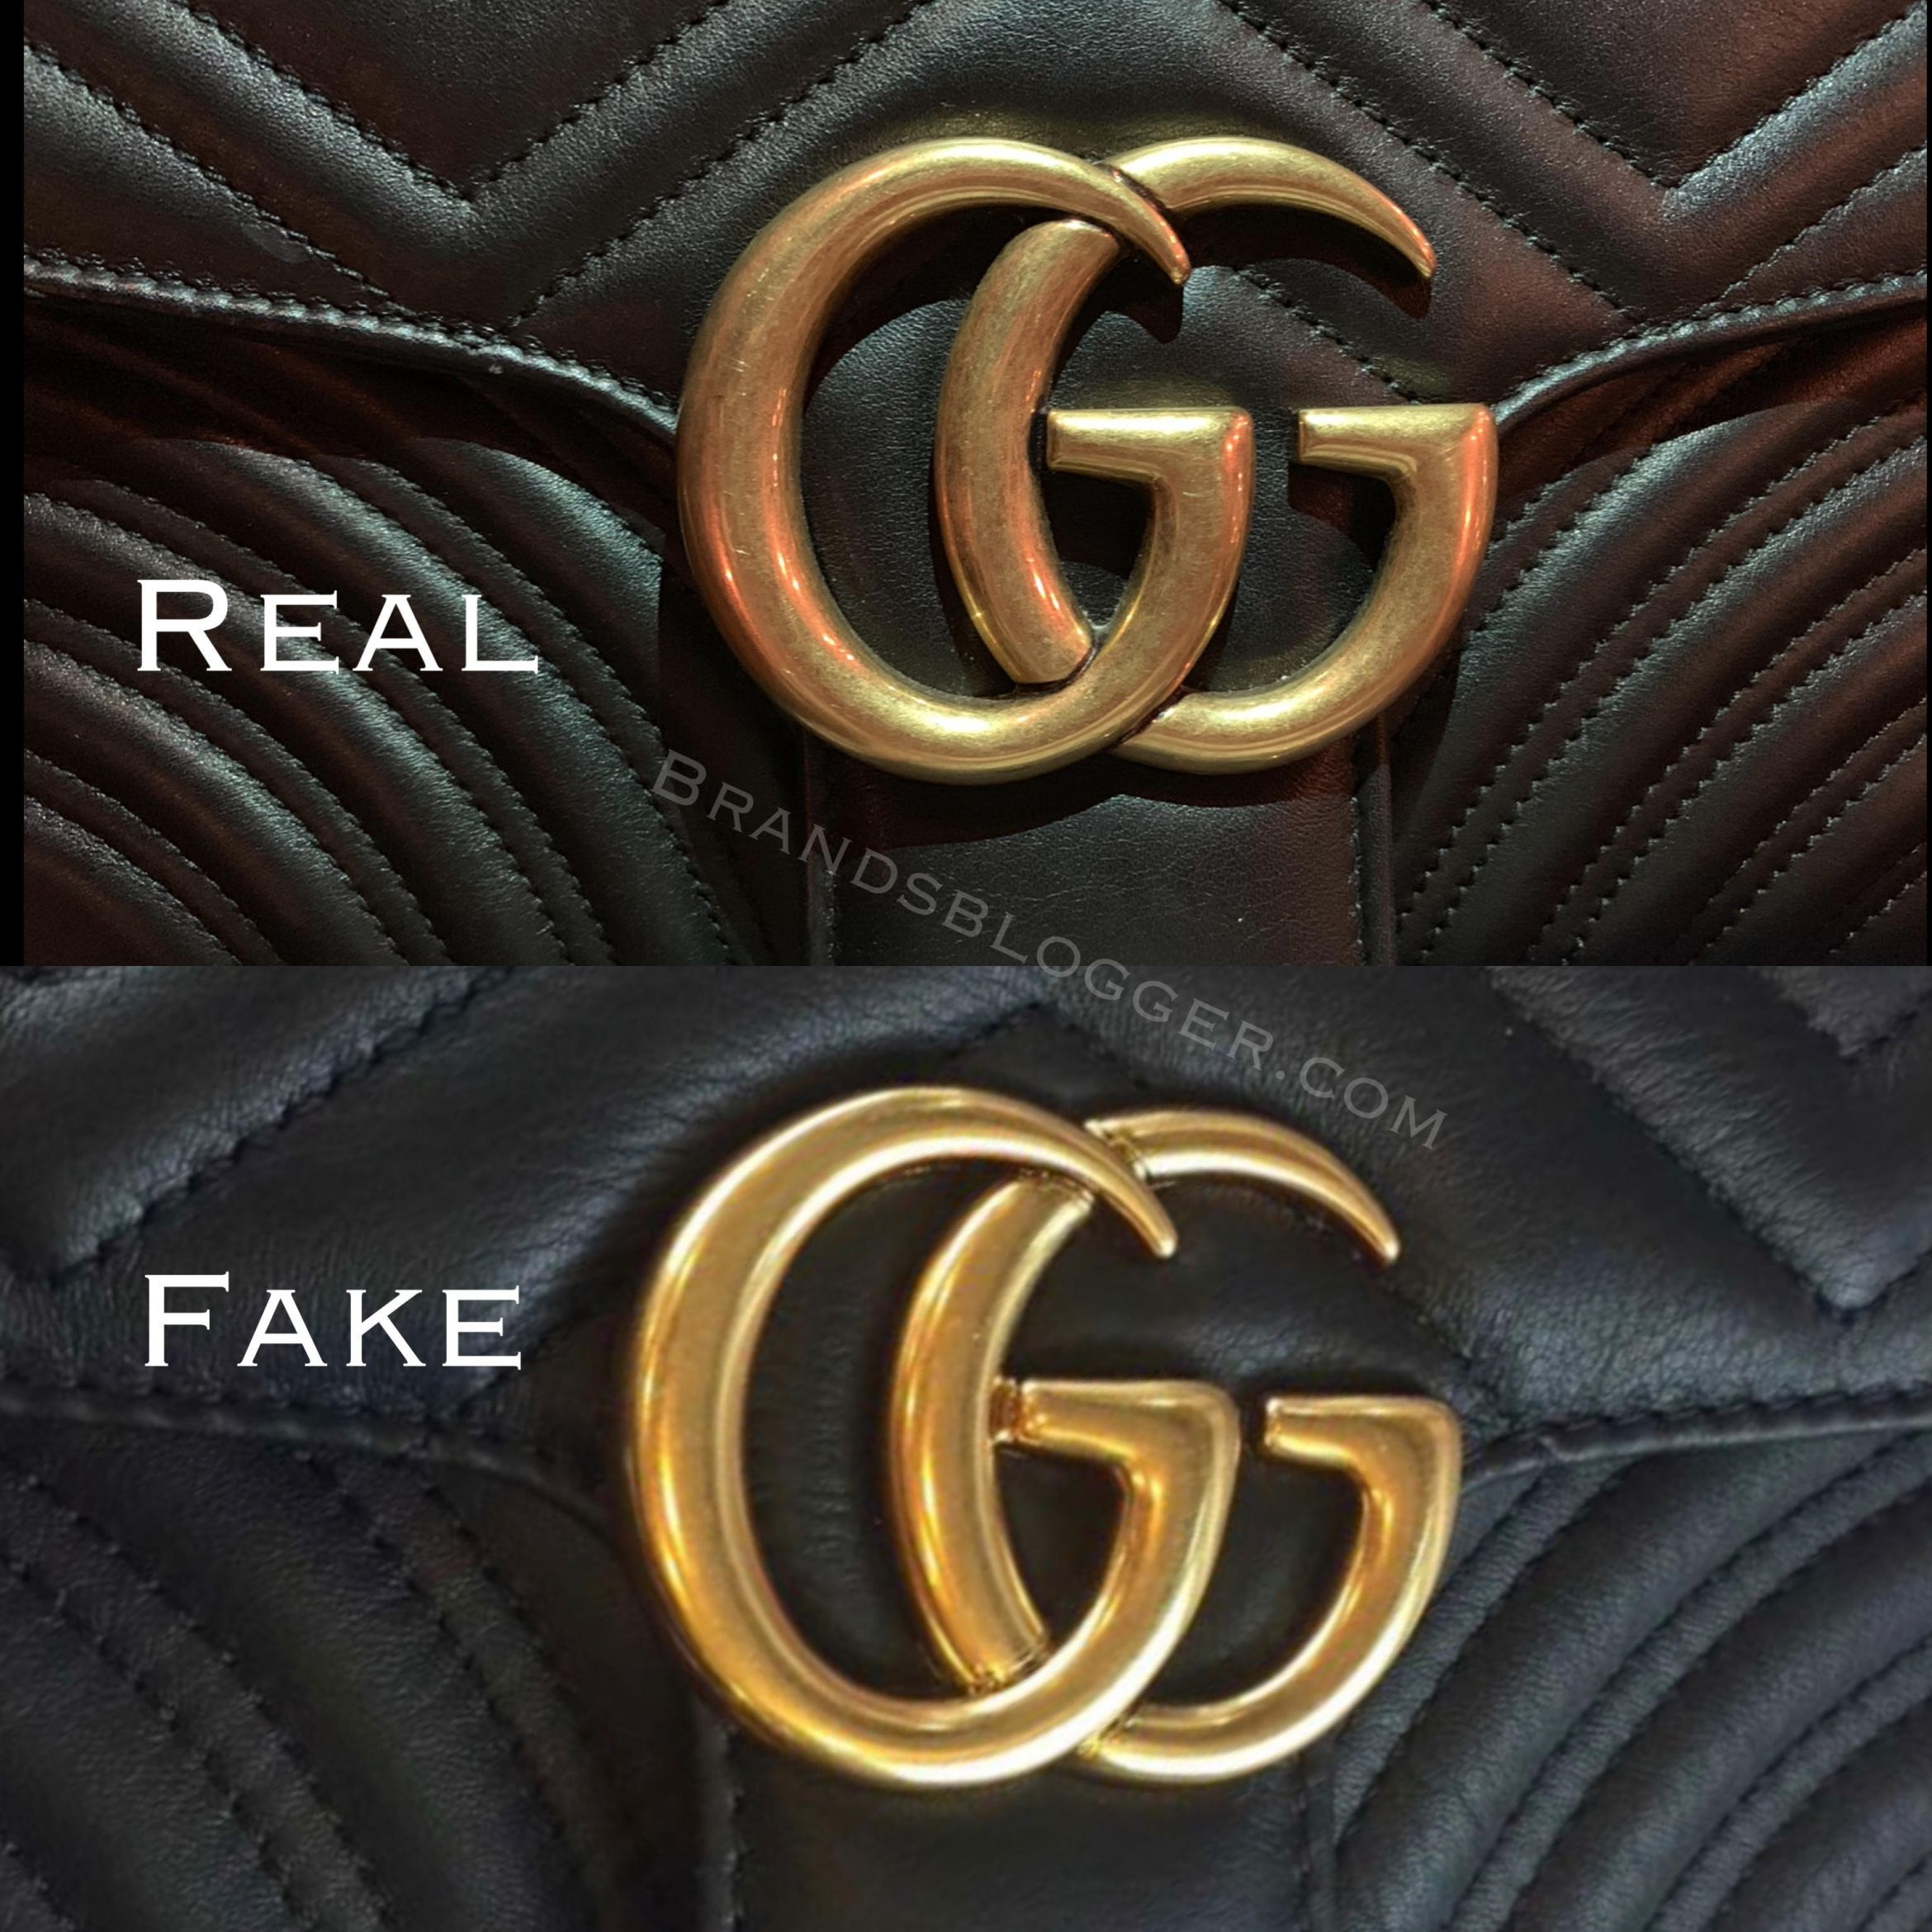 How to spot a fake gucci marmont bag brands blogger in